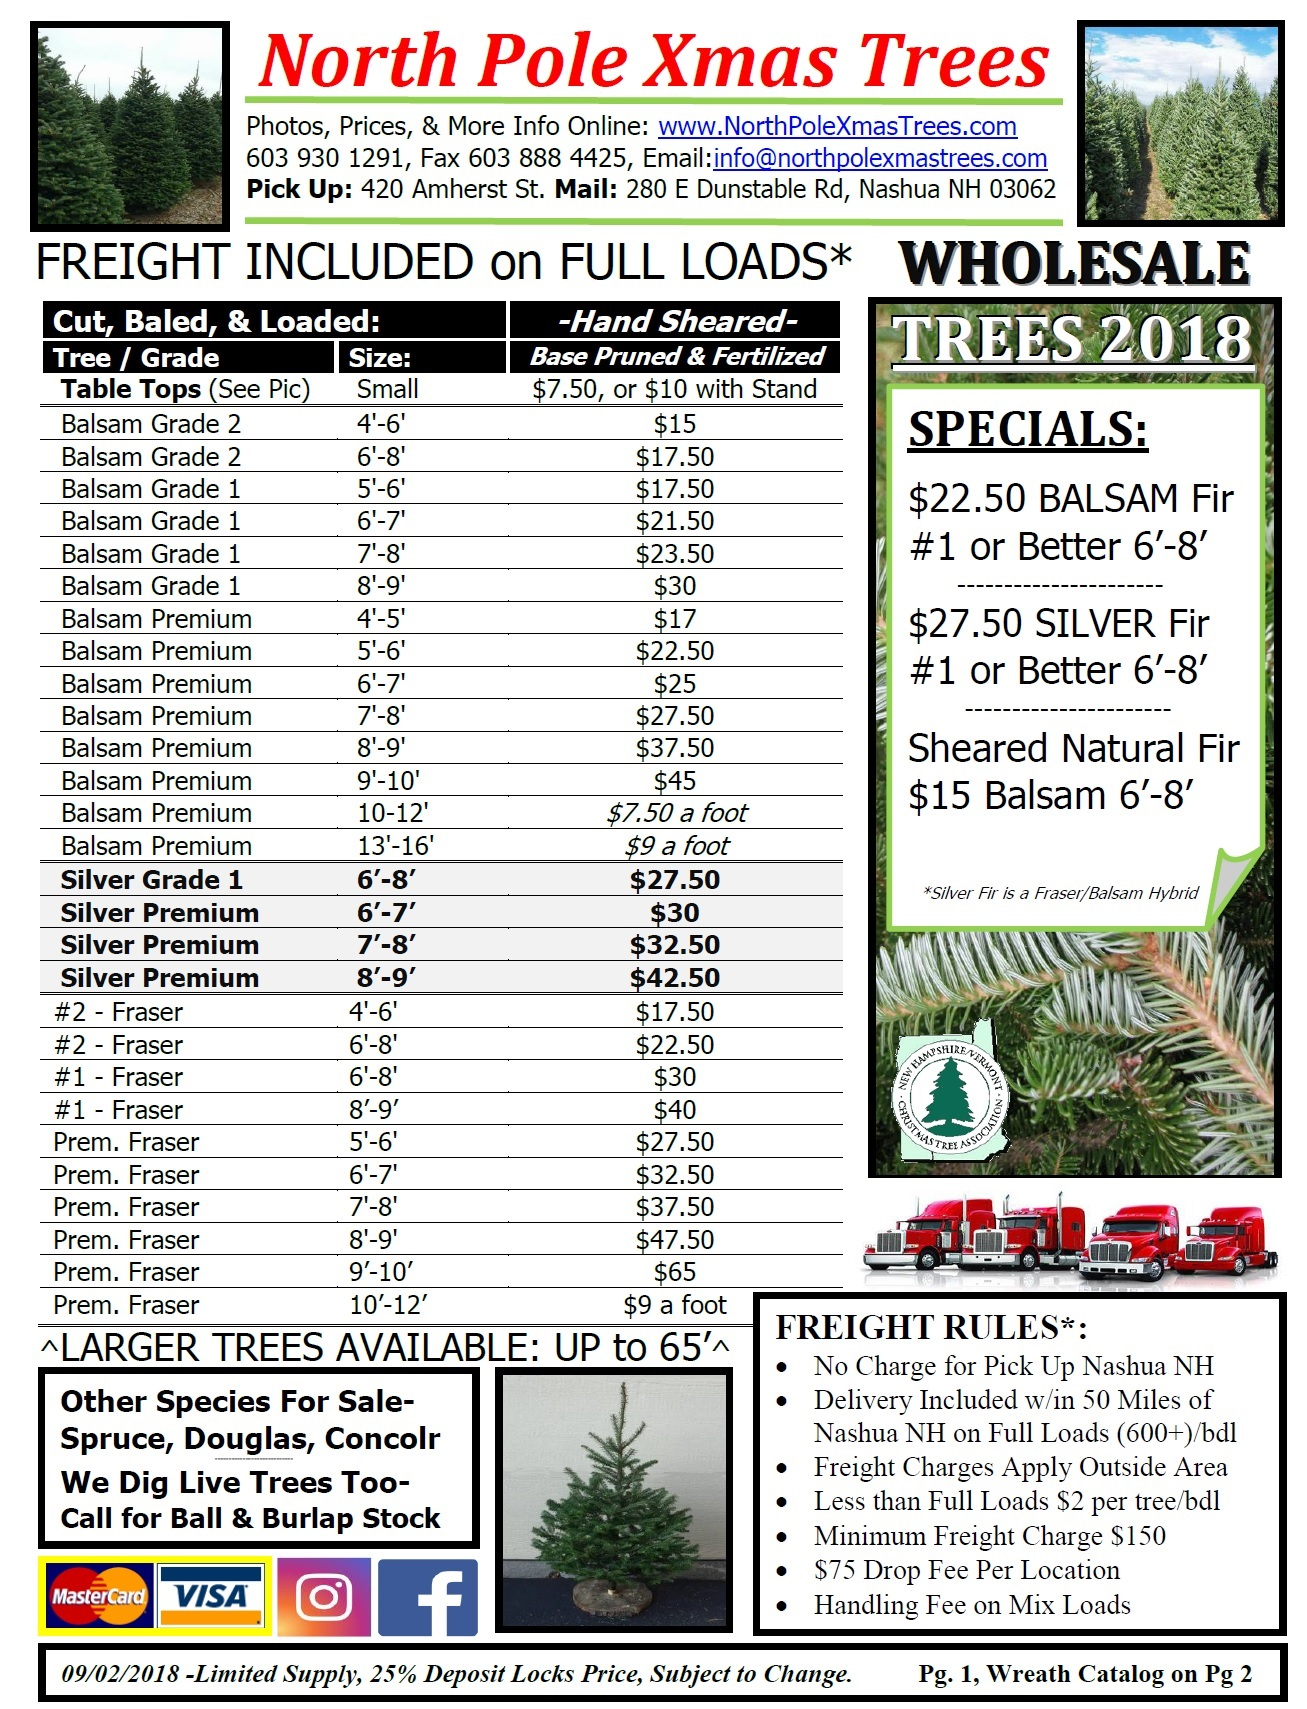 Wholesale 2018 Christmas Tree Pricelist